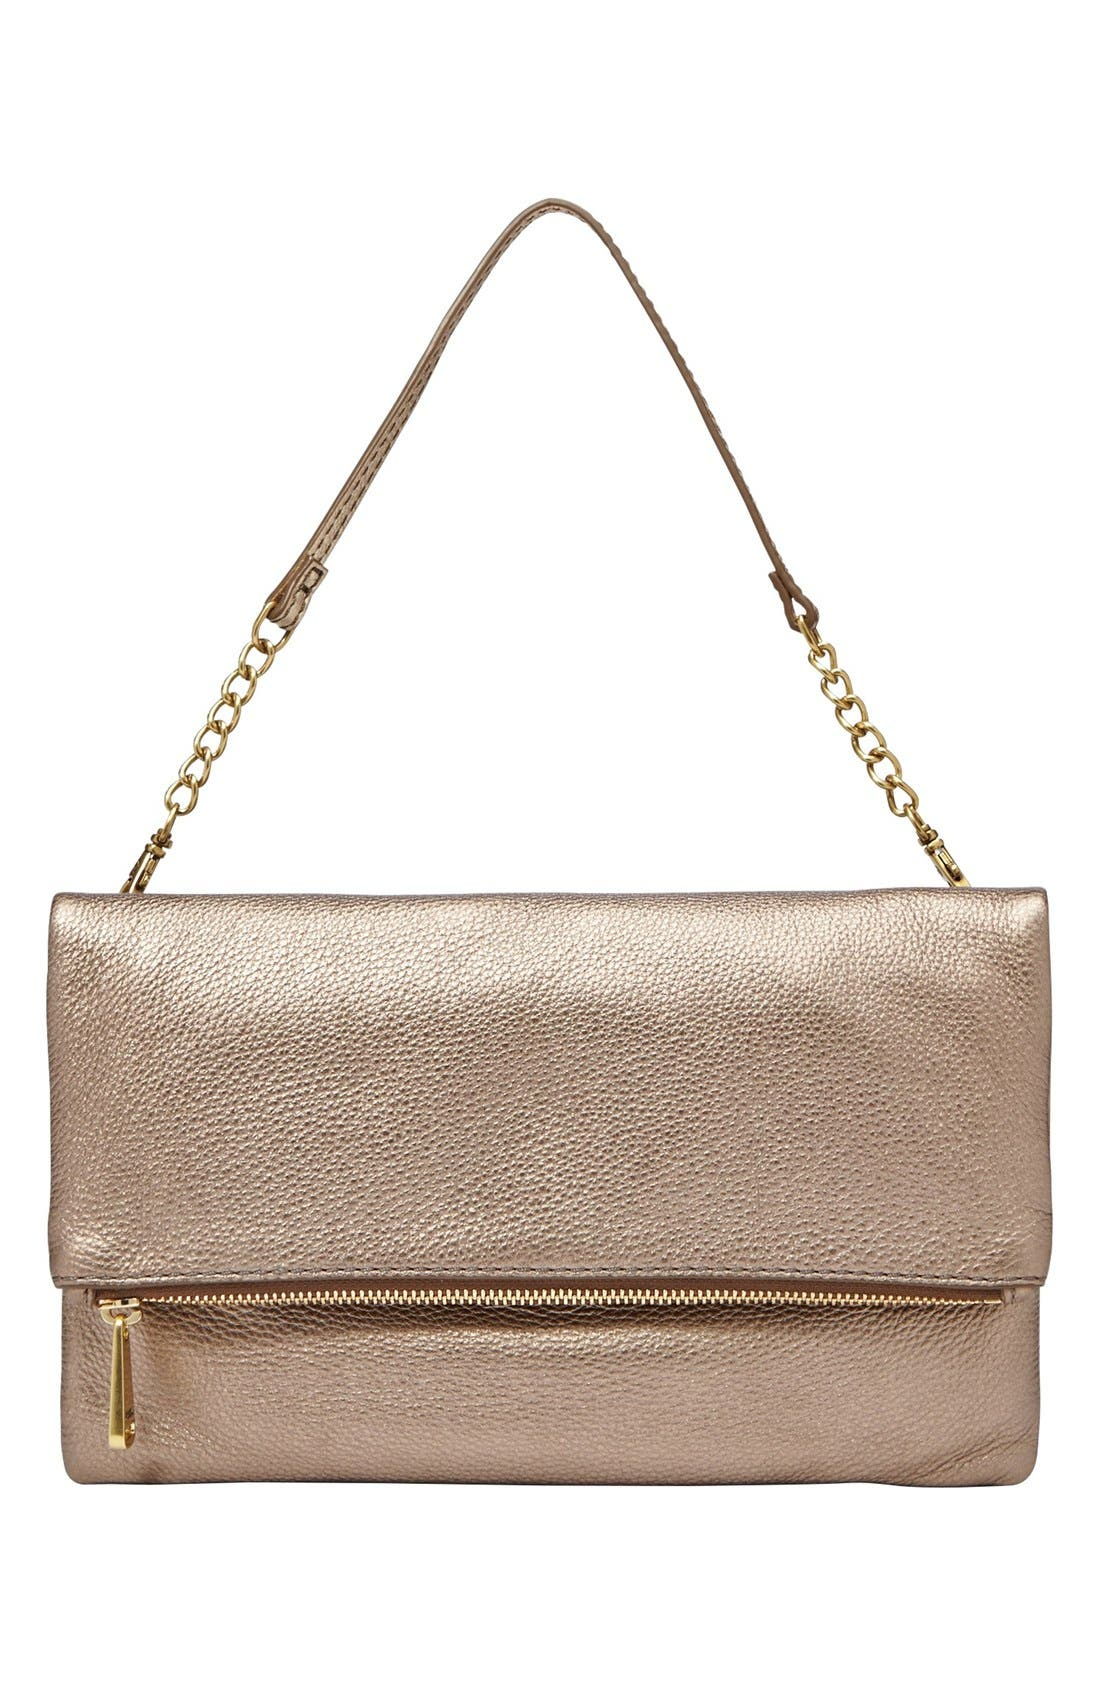 Alternate Image 1 Selected - Fossil 'Erin' Foldover Clutch